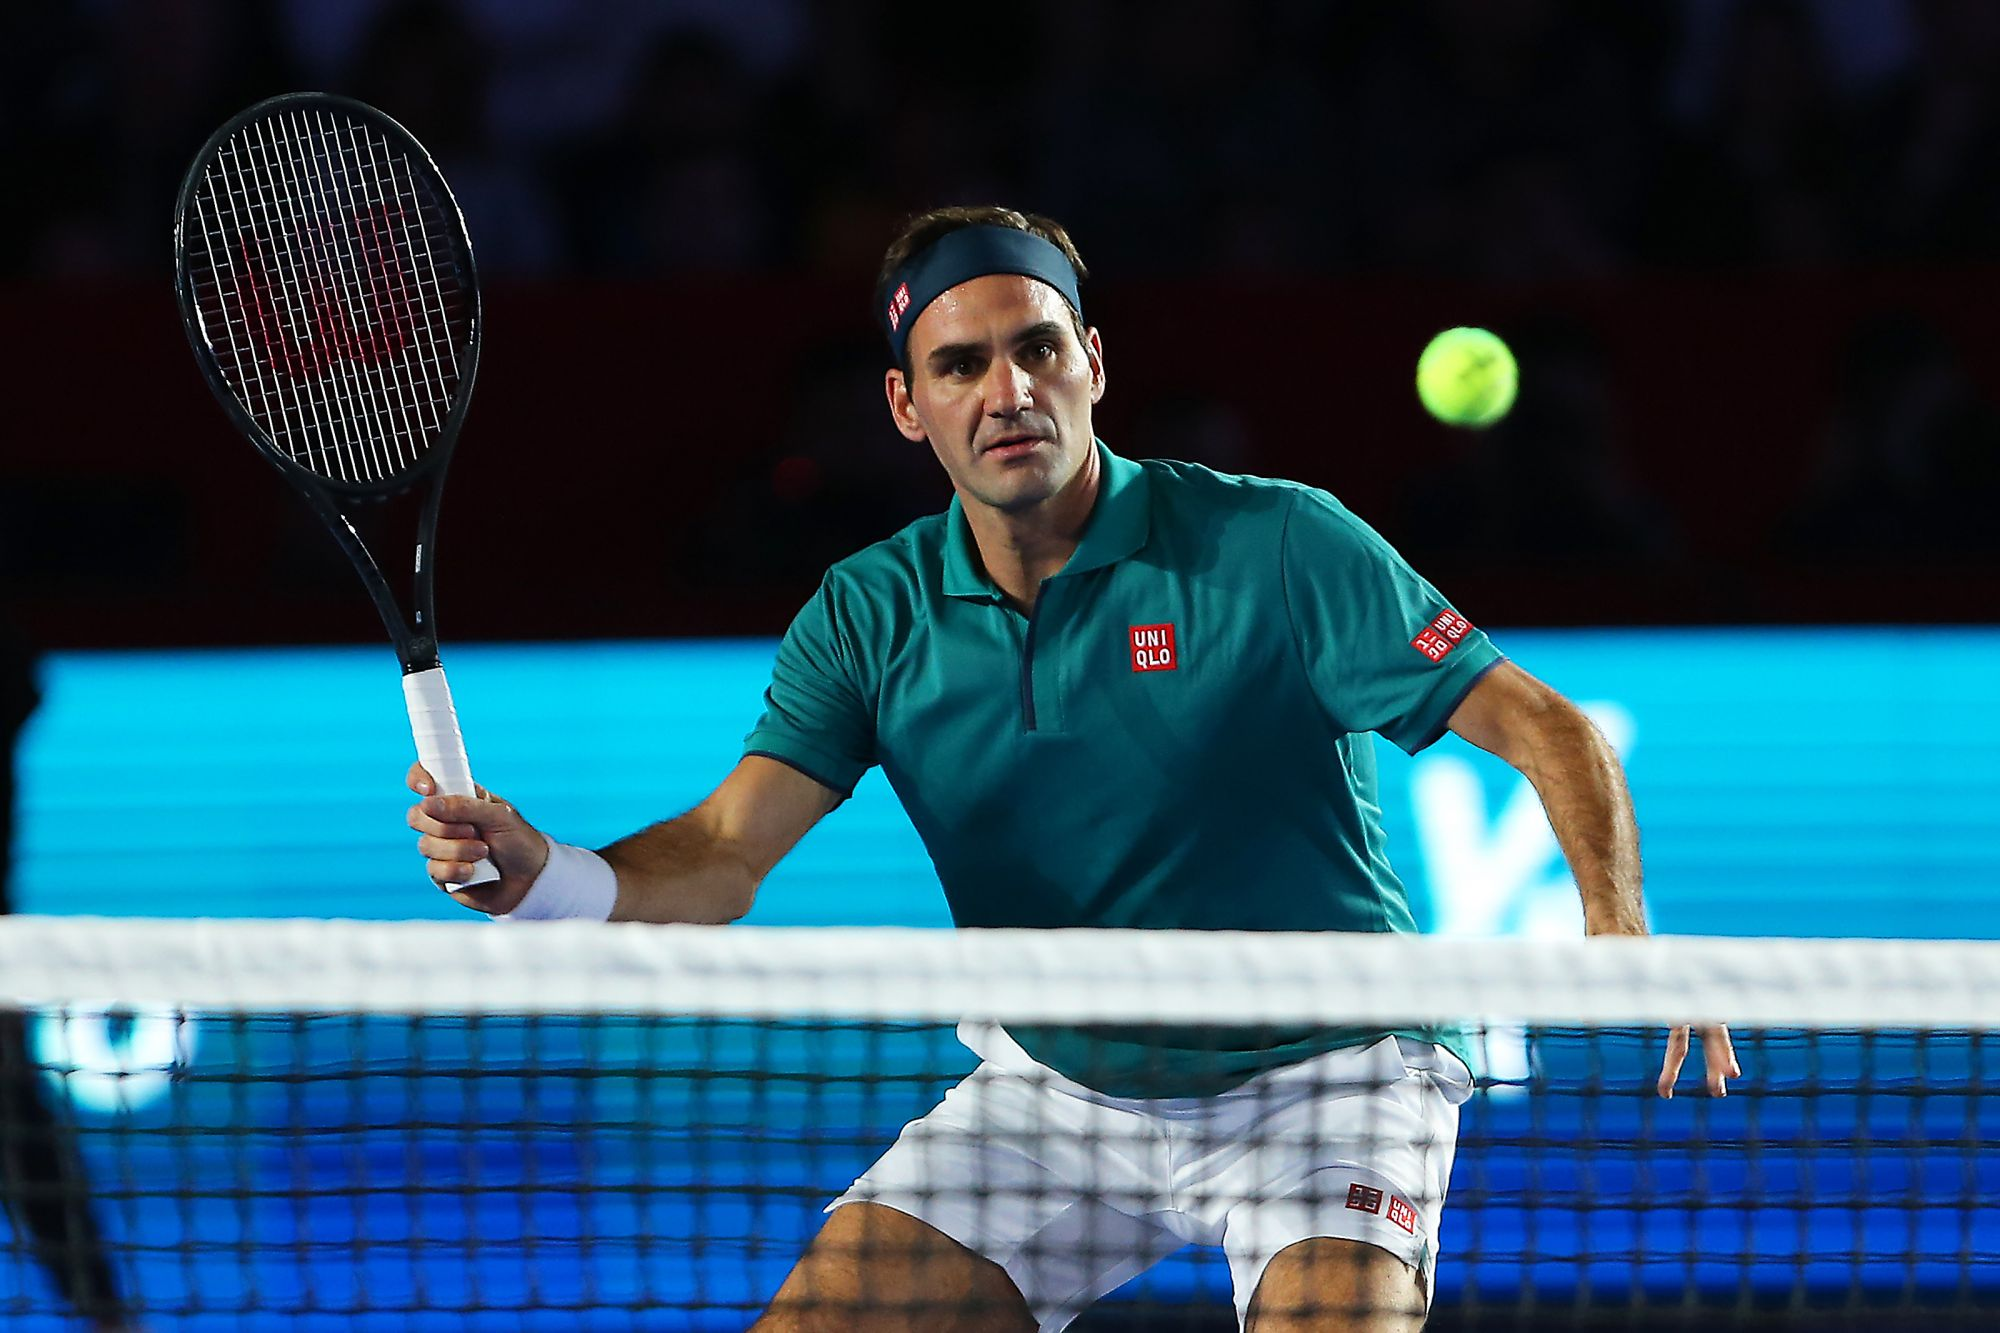 MEXICO CITY, MEXICO - NOVEMBER 23: Roger Federer of Switzerland plays a shot during 'The Greatest Match' between Roger Federer and Alexander Zverev at Plaza Mexico on November 23, 2019 in Mexico City, Mexico. (Photo by Angel Castillo/Jam Media/Getty Images)